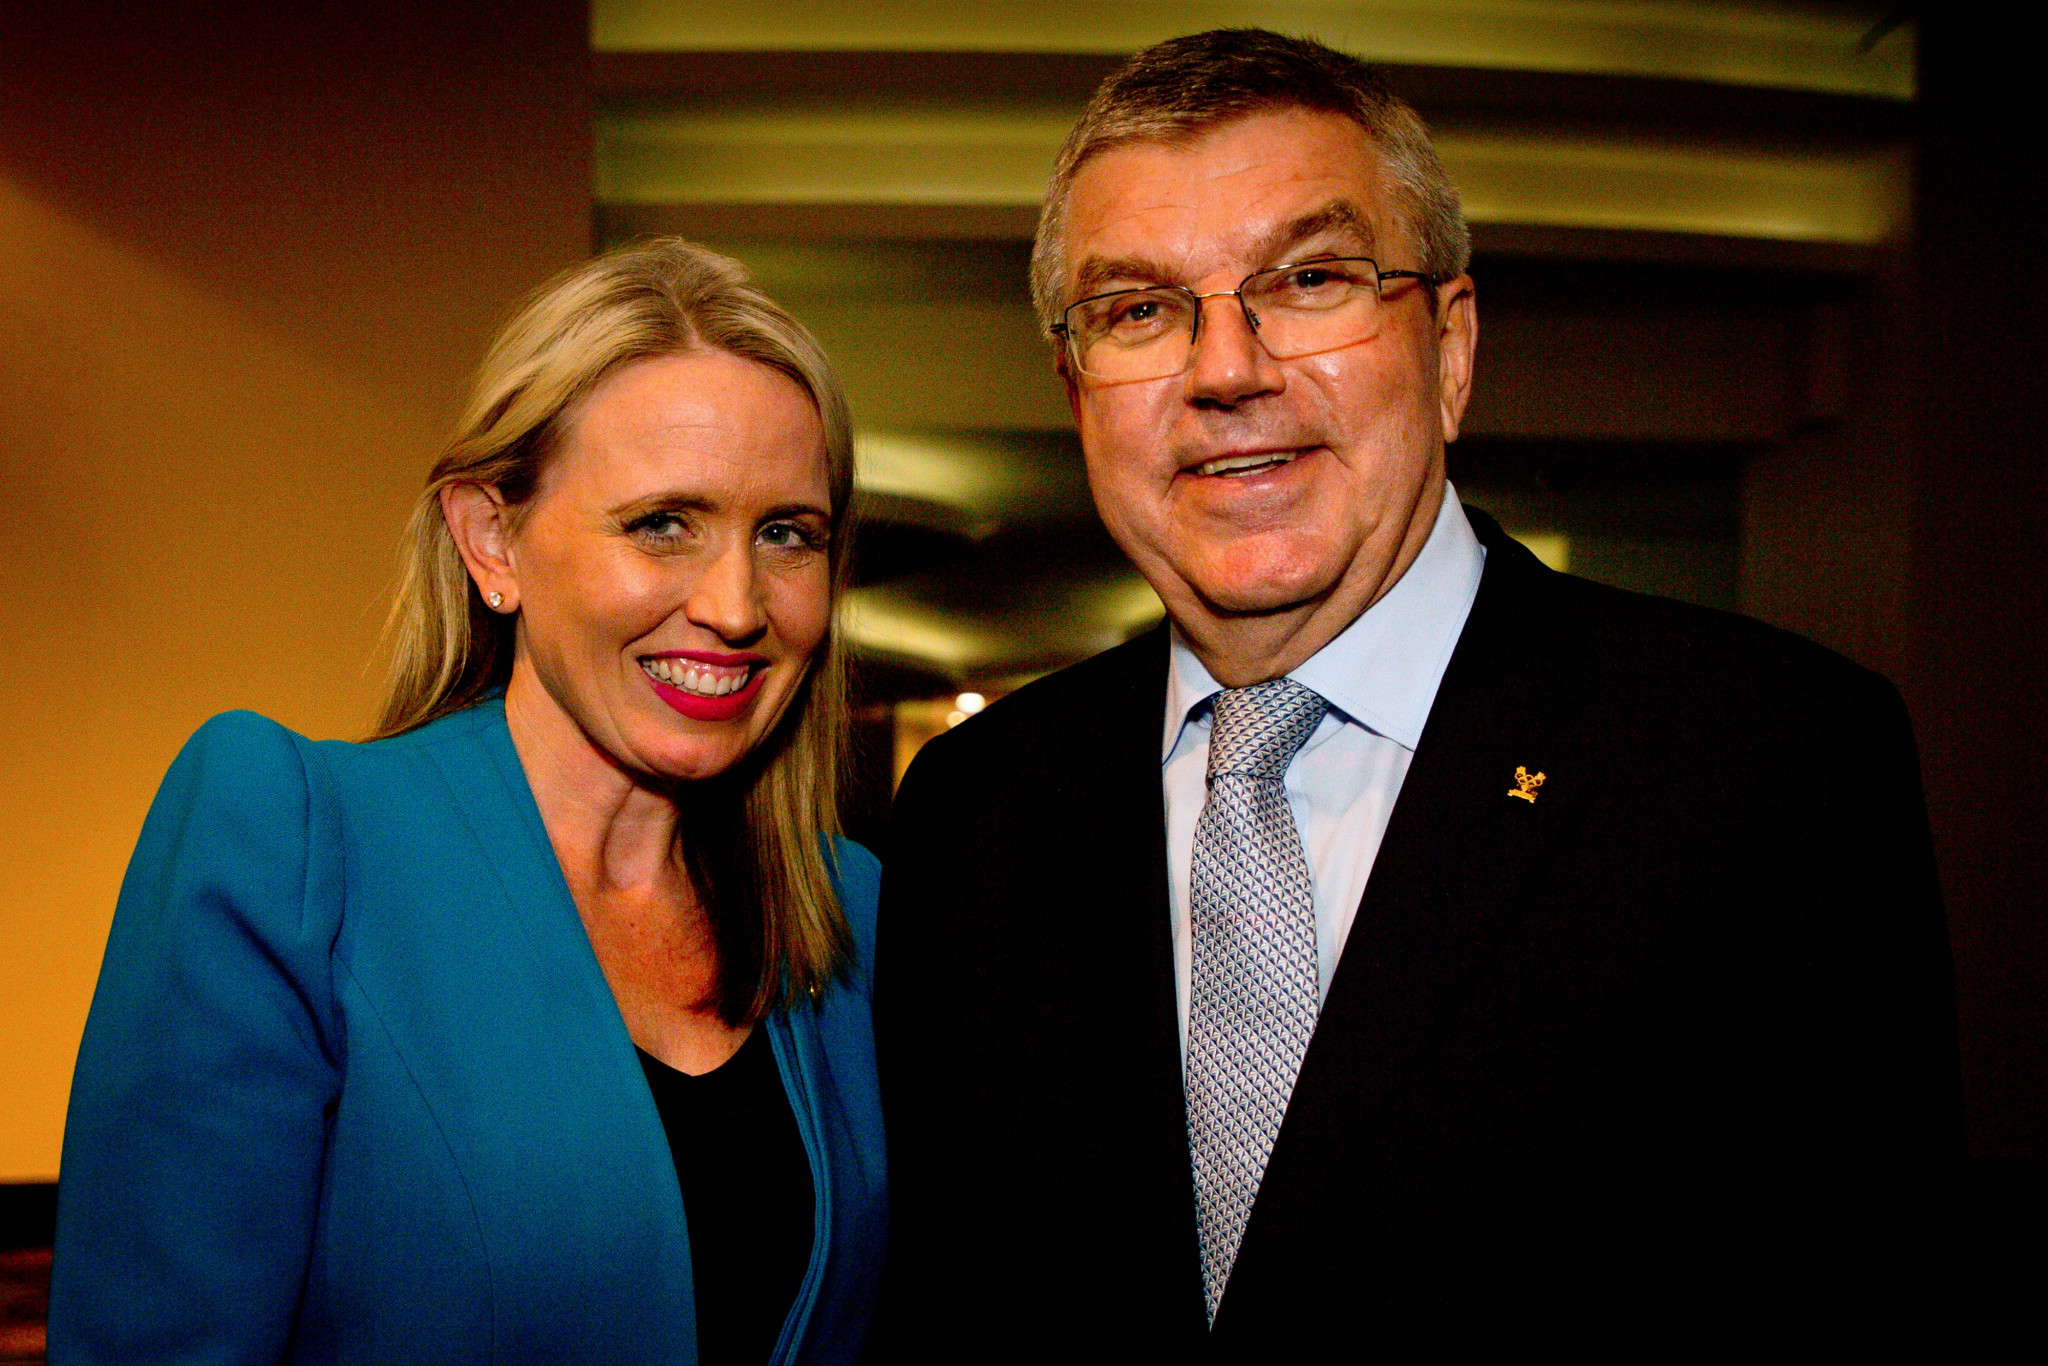 IOC President Thomas Bach, right, has consistently praised Queensland's bid ©Getty Images